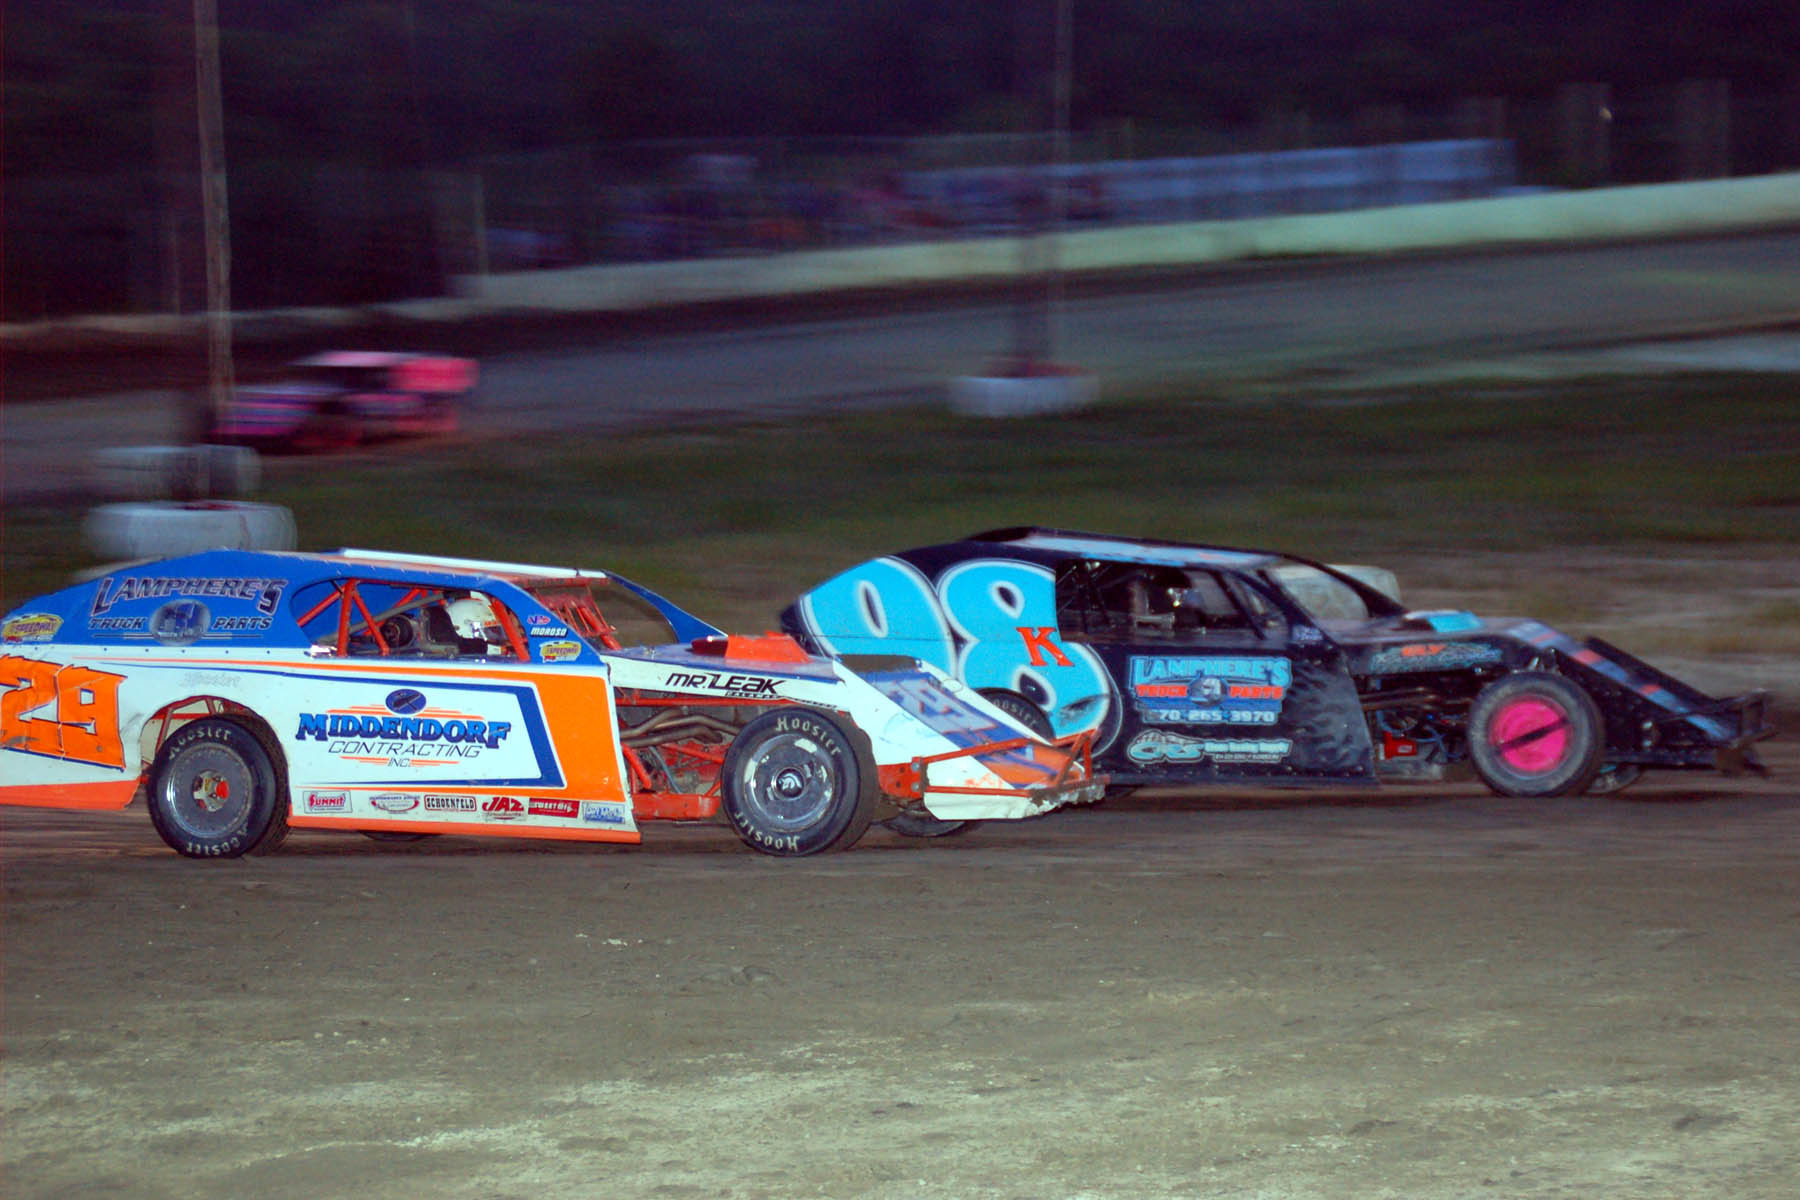 Bobby Maynard looks to the outside of Keith Jack Lamphere for the lead.